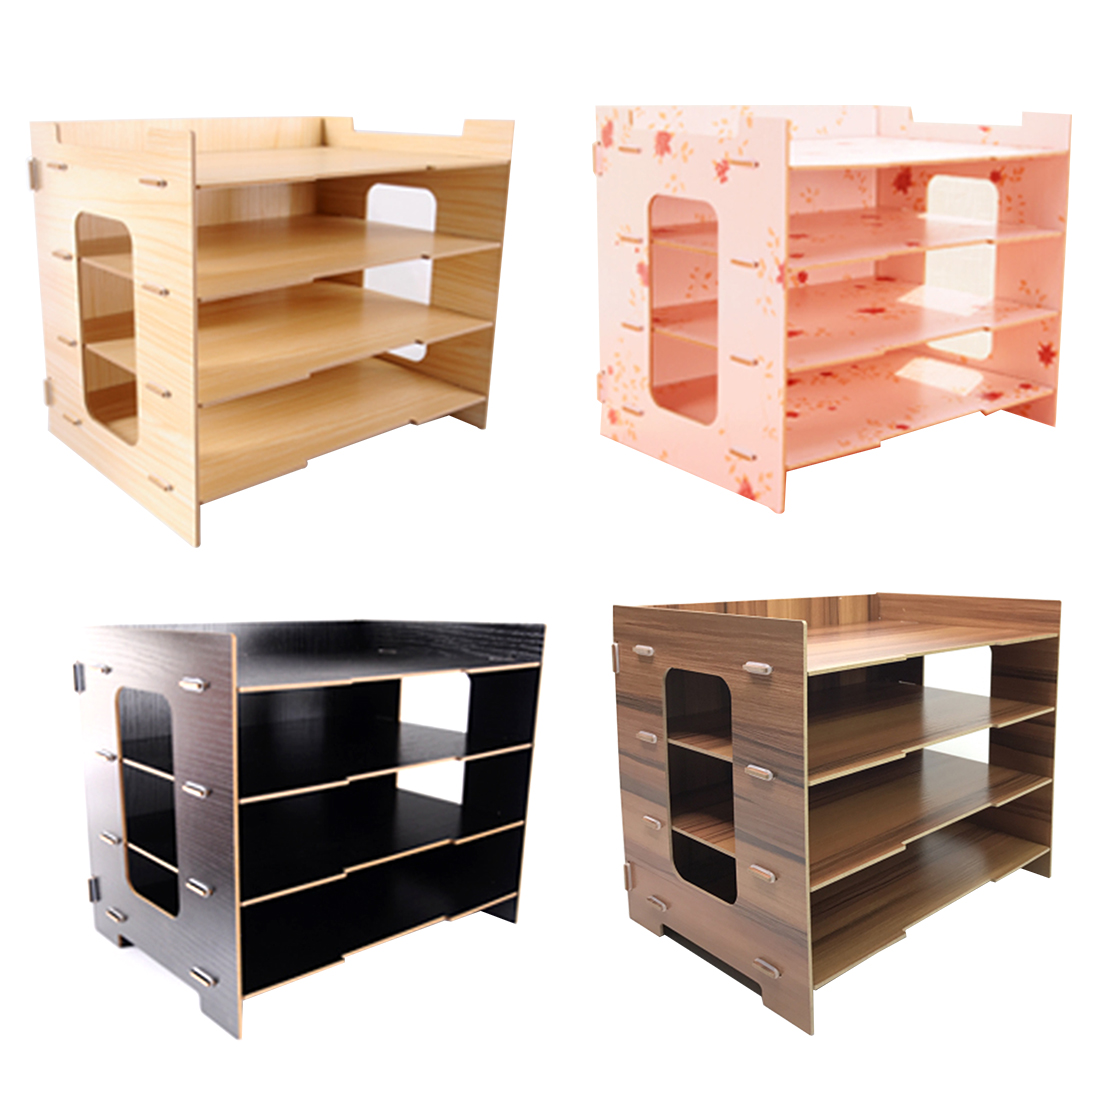 iTECHOR Four-layer Tabletop Wood Storage Rack Durable Office Sill Simple Desktop Organizer Shelf for Books Documents